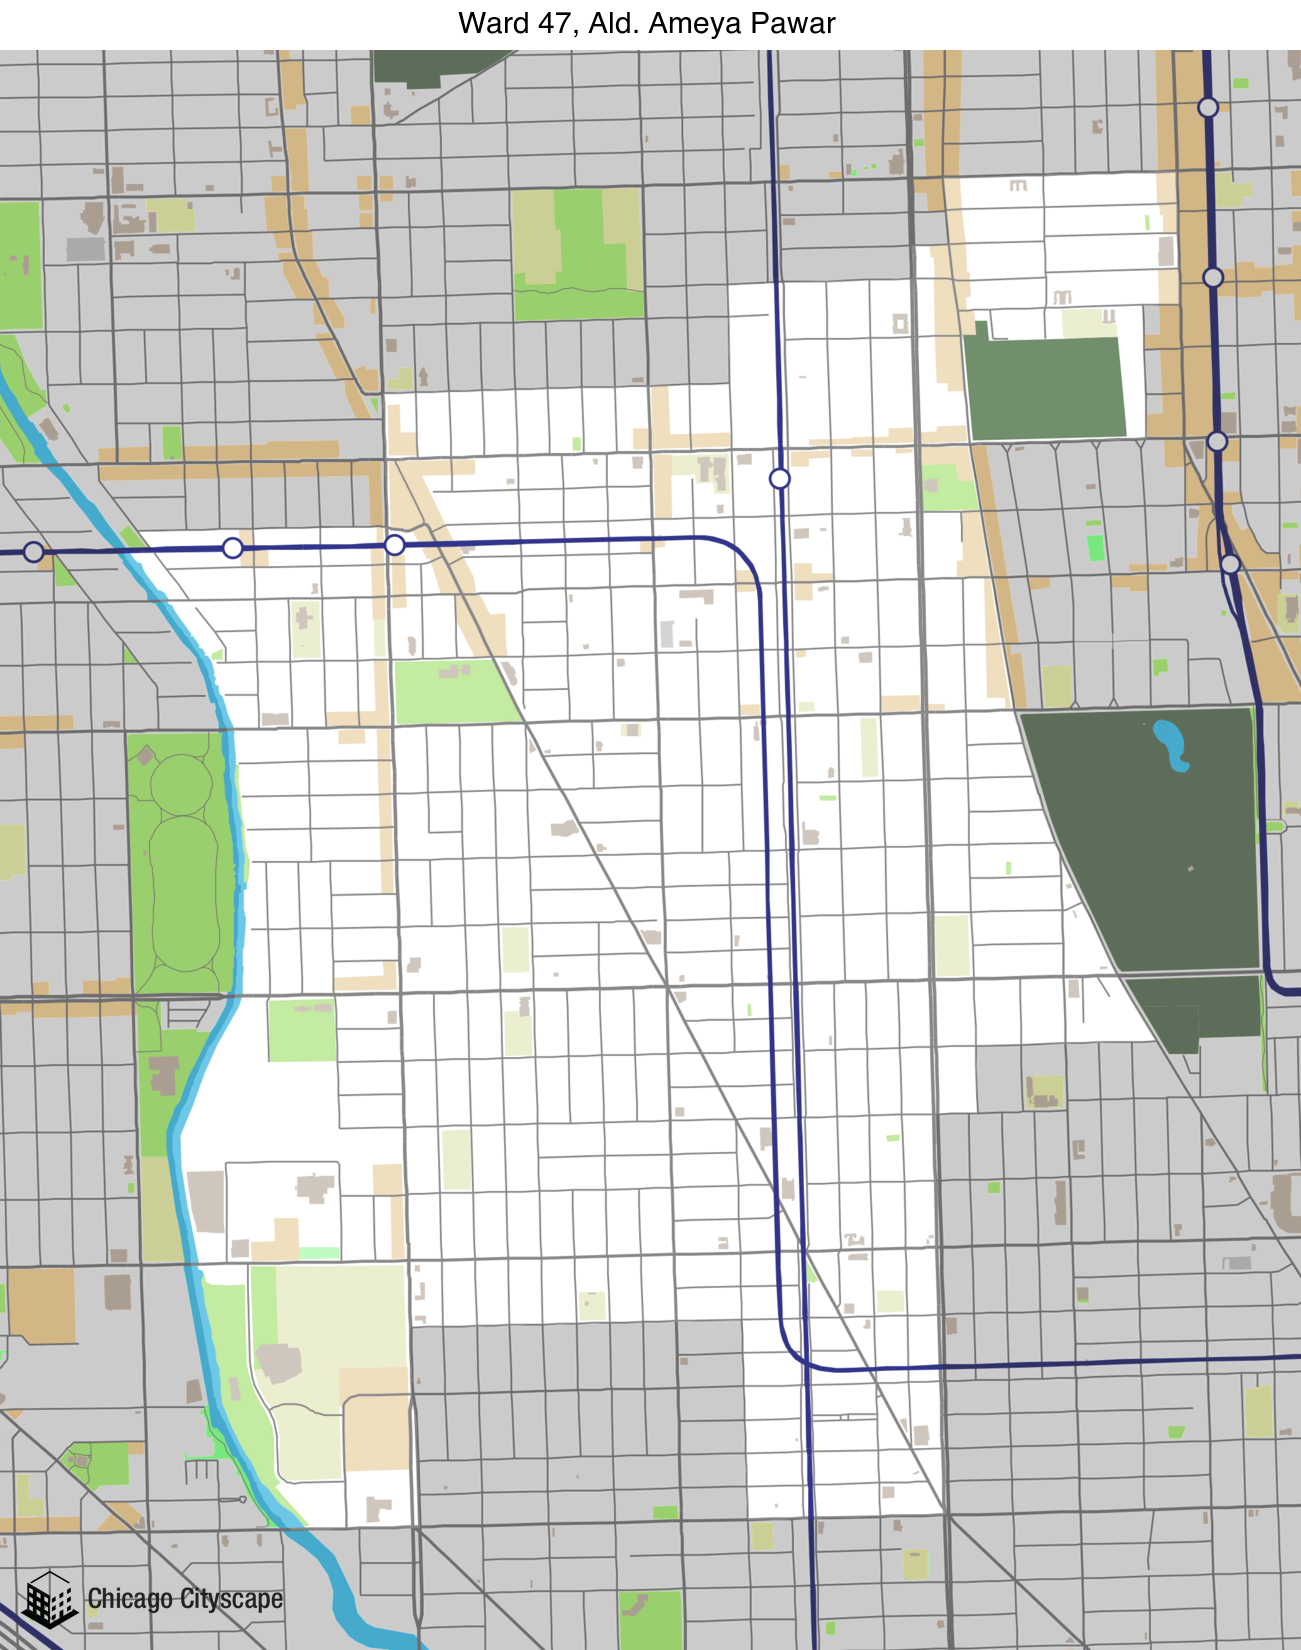 3rd Ward Chicago Map.Chicago Cityscape Map Of Building Projects Properties And